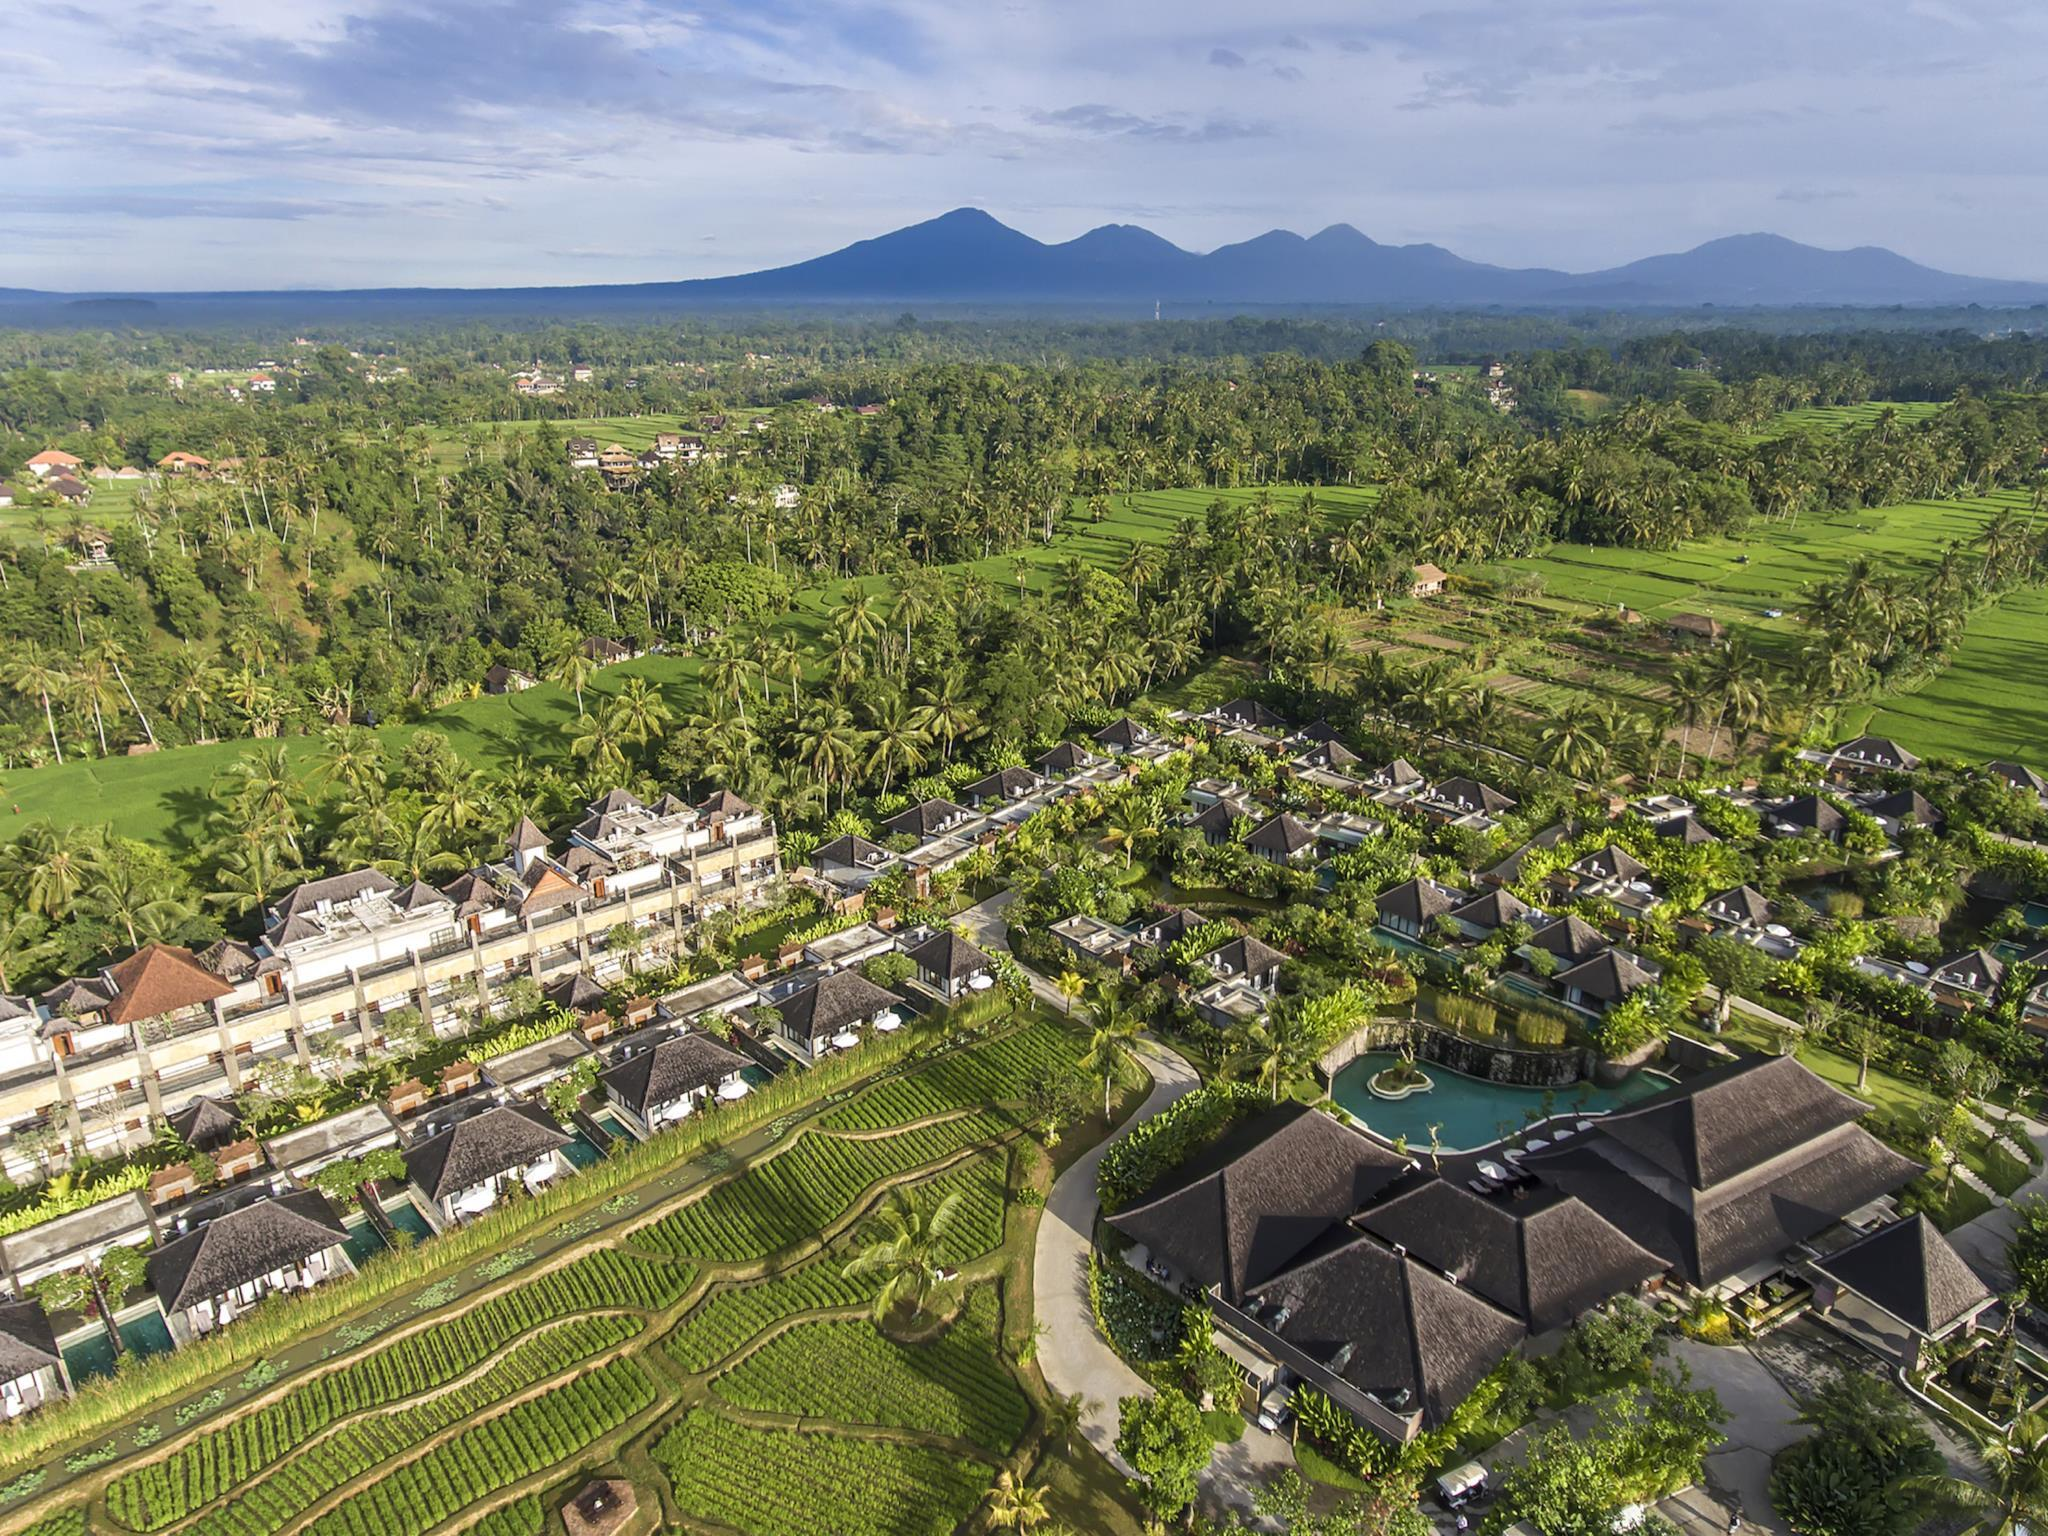 Visesa Ubud Resort ホテル詳細